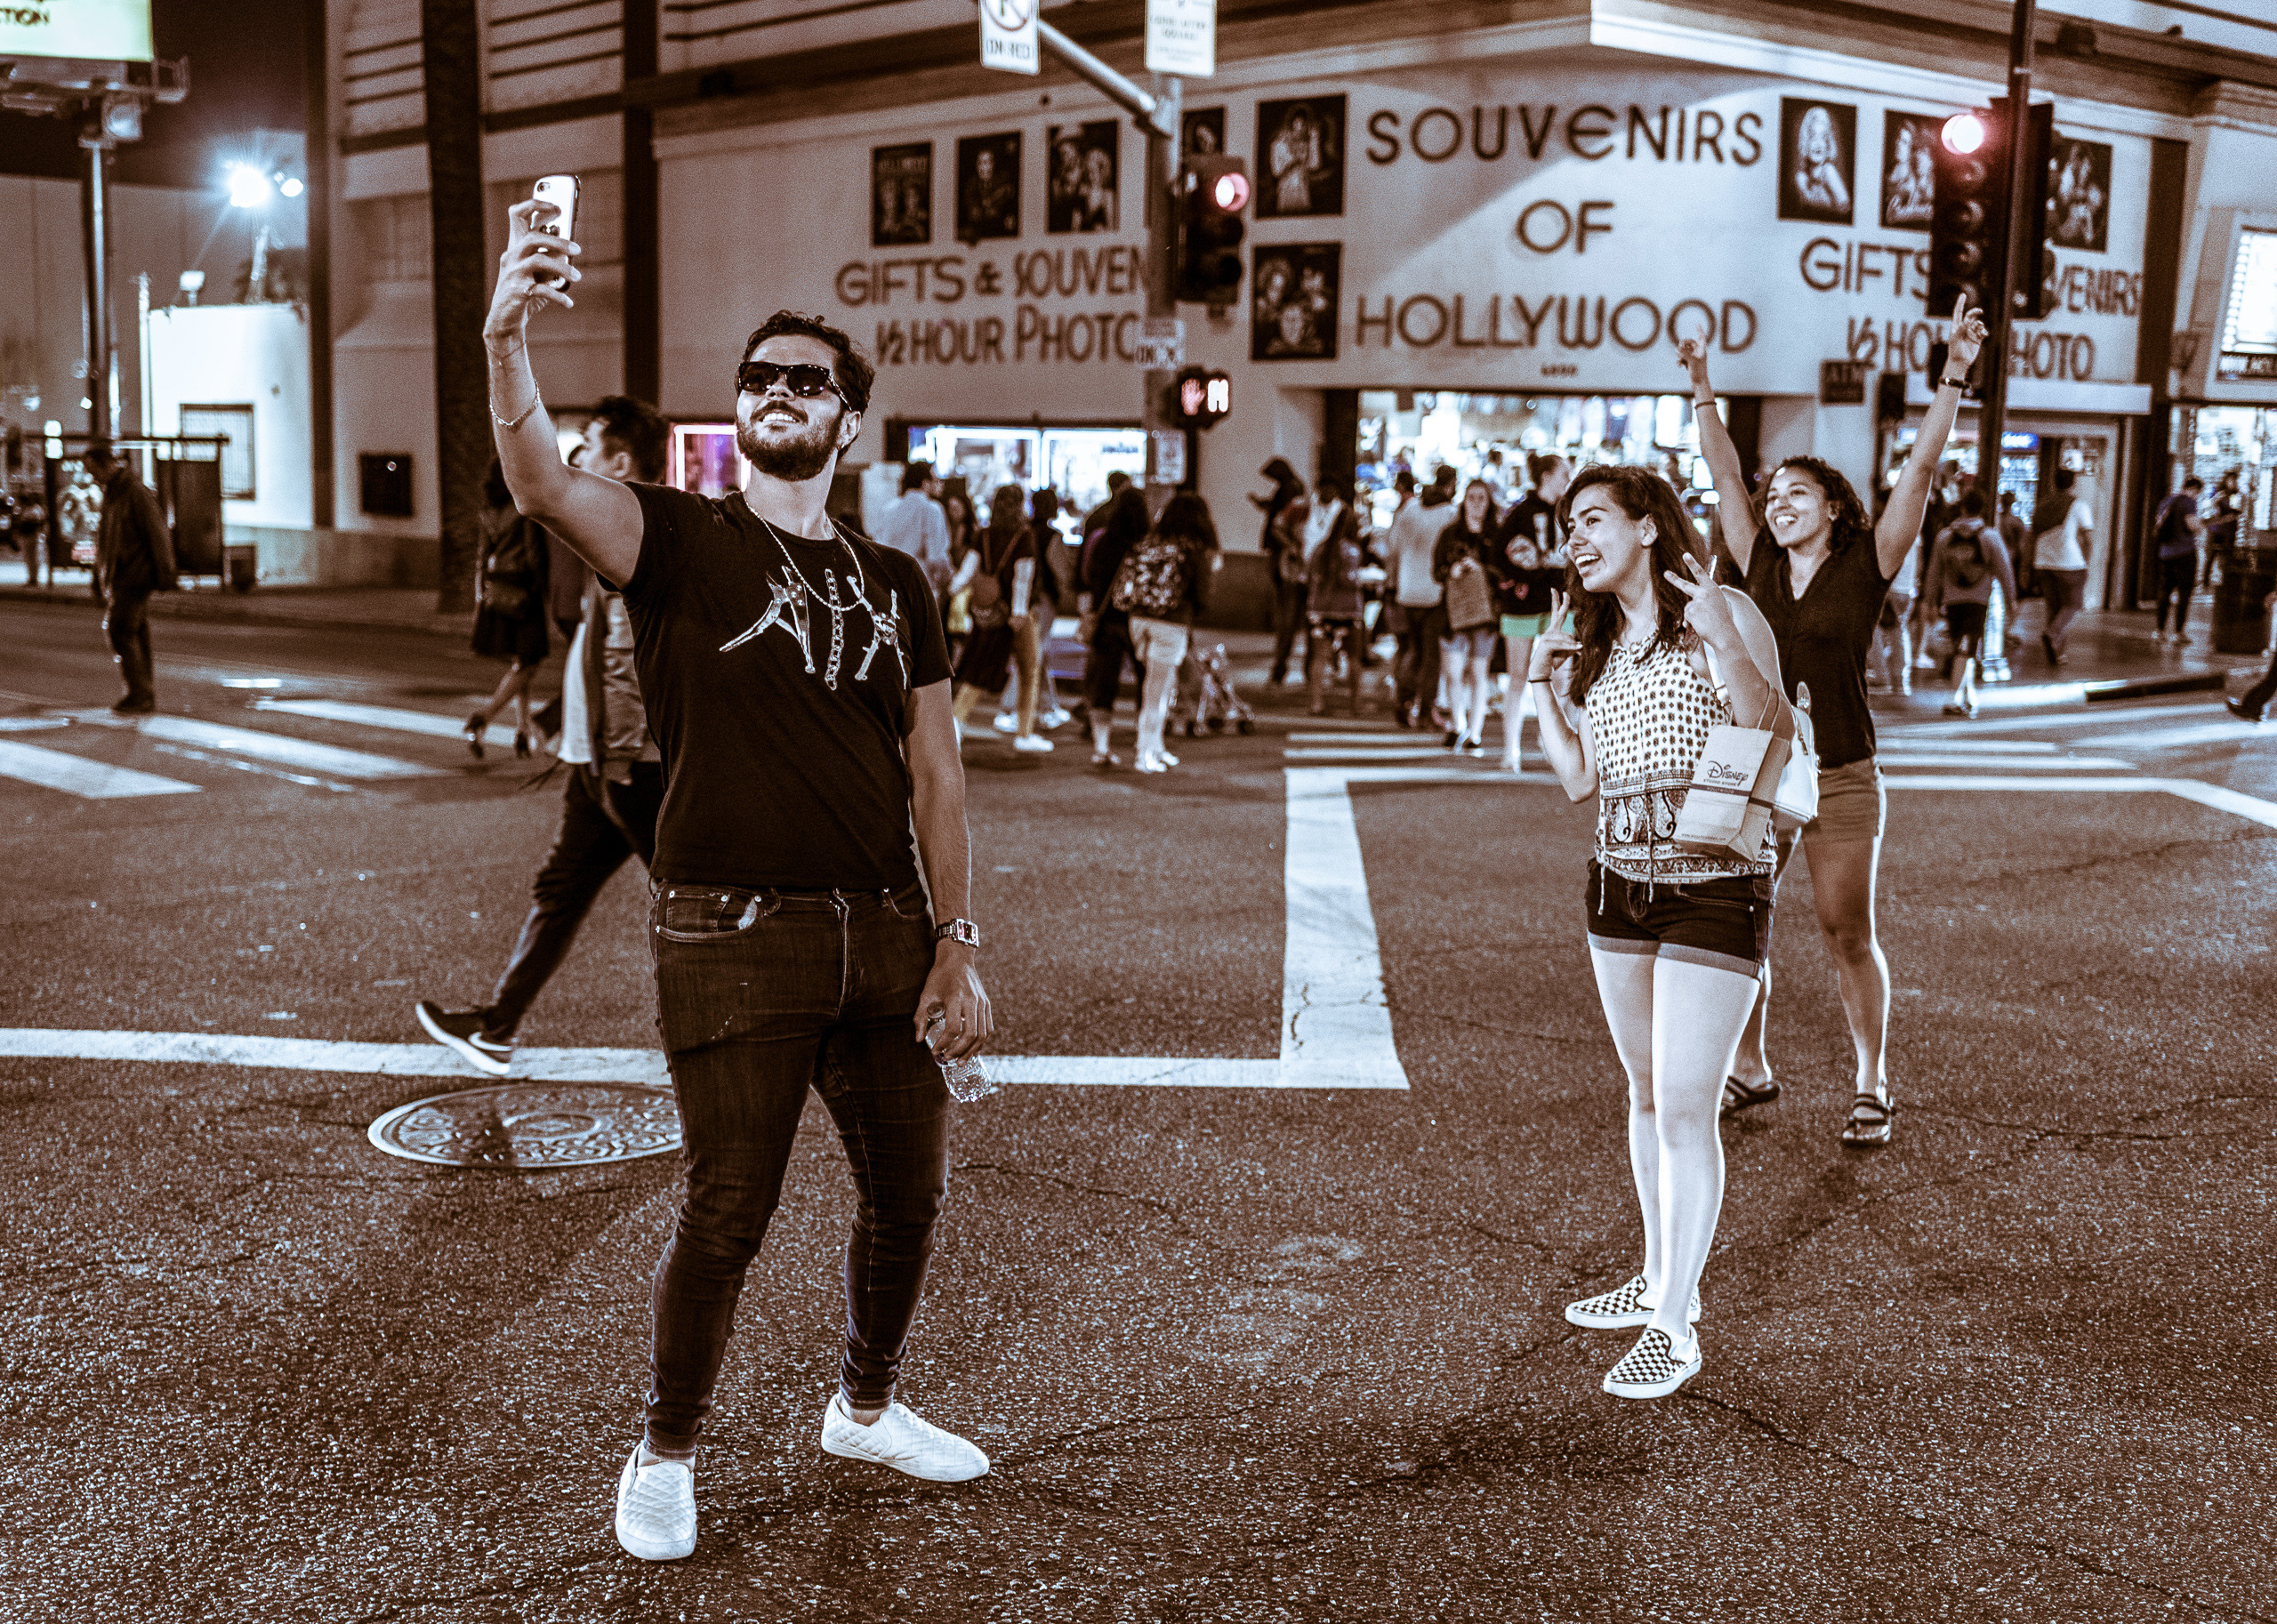 a man stands in the middle of the intersection at Hollywood & Highland and holds his cell phone high in the air. Behind him, two women raise their arms in a sort of exalted victory gesture